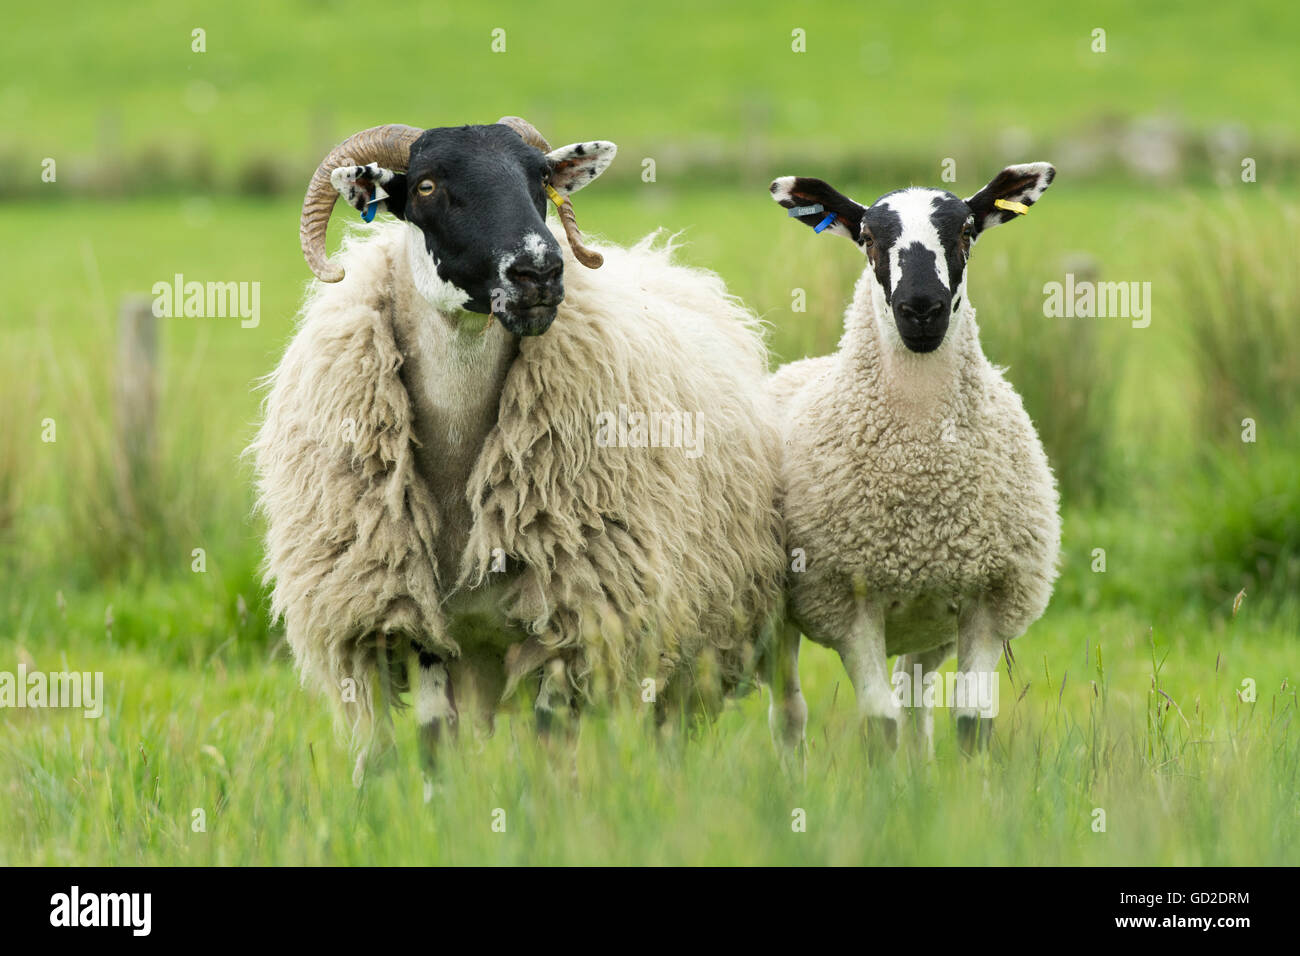 Hexham Blackface ewe with Mule lamb at foot. Northumberland, UK. - Stock Image